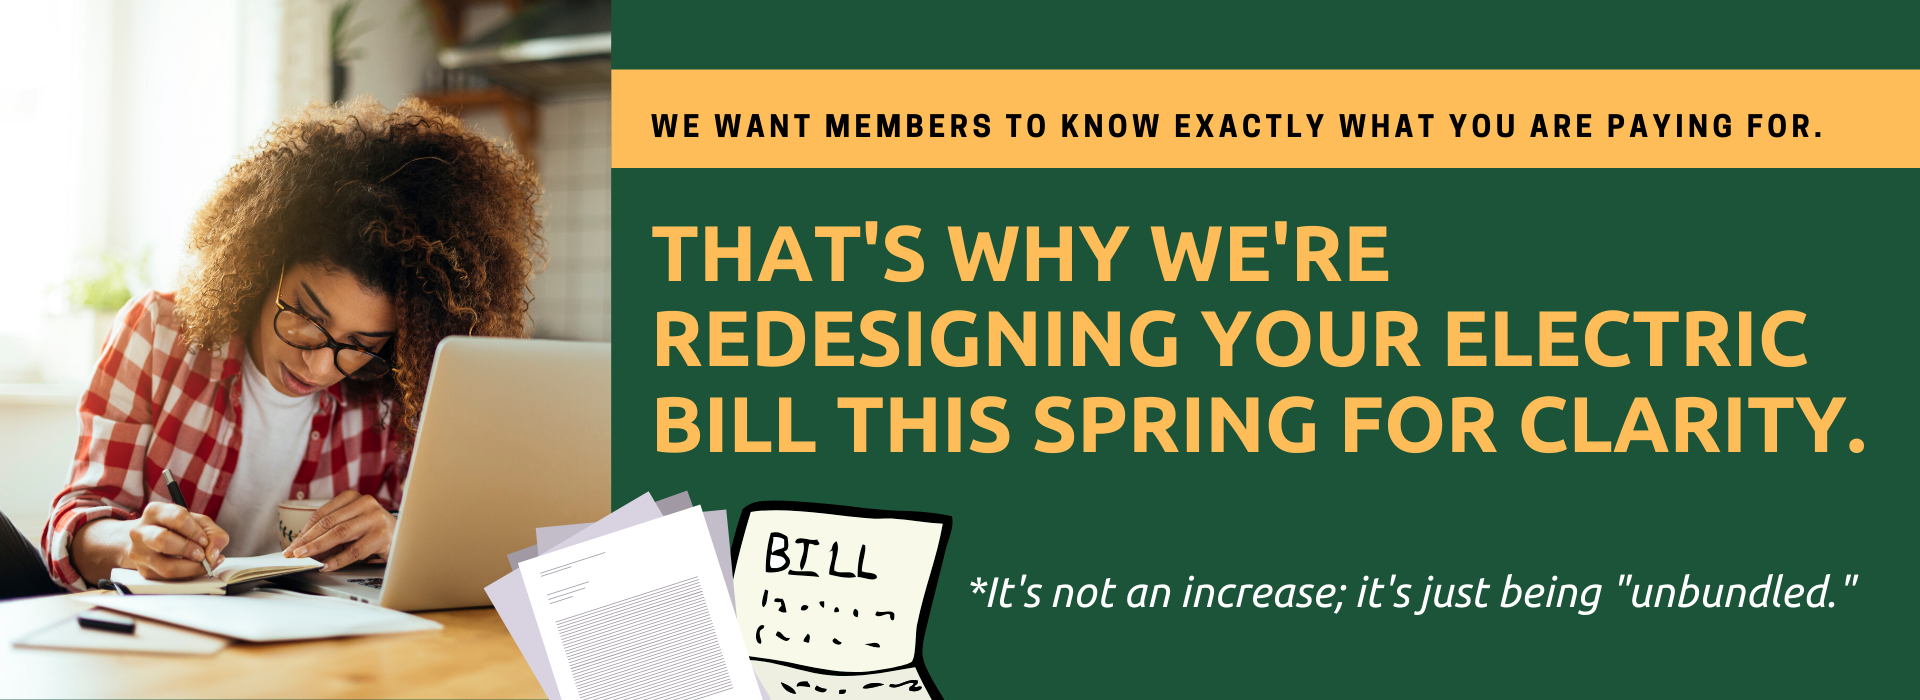 Midwest Electric bill redesign heads up